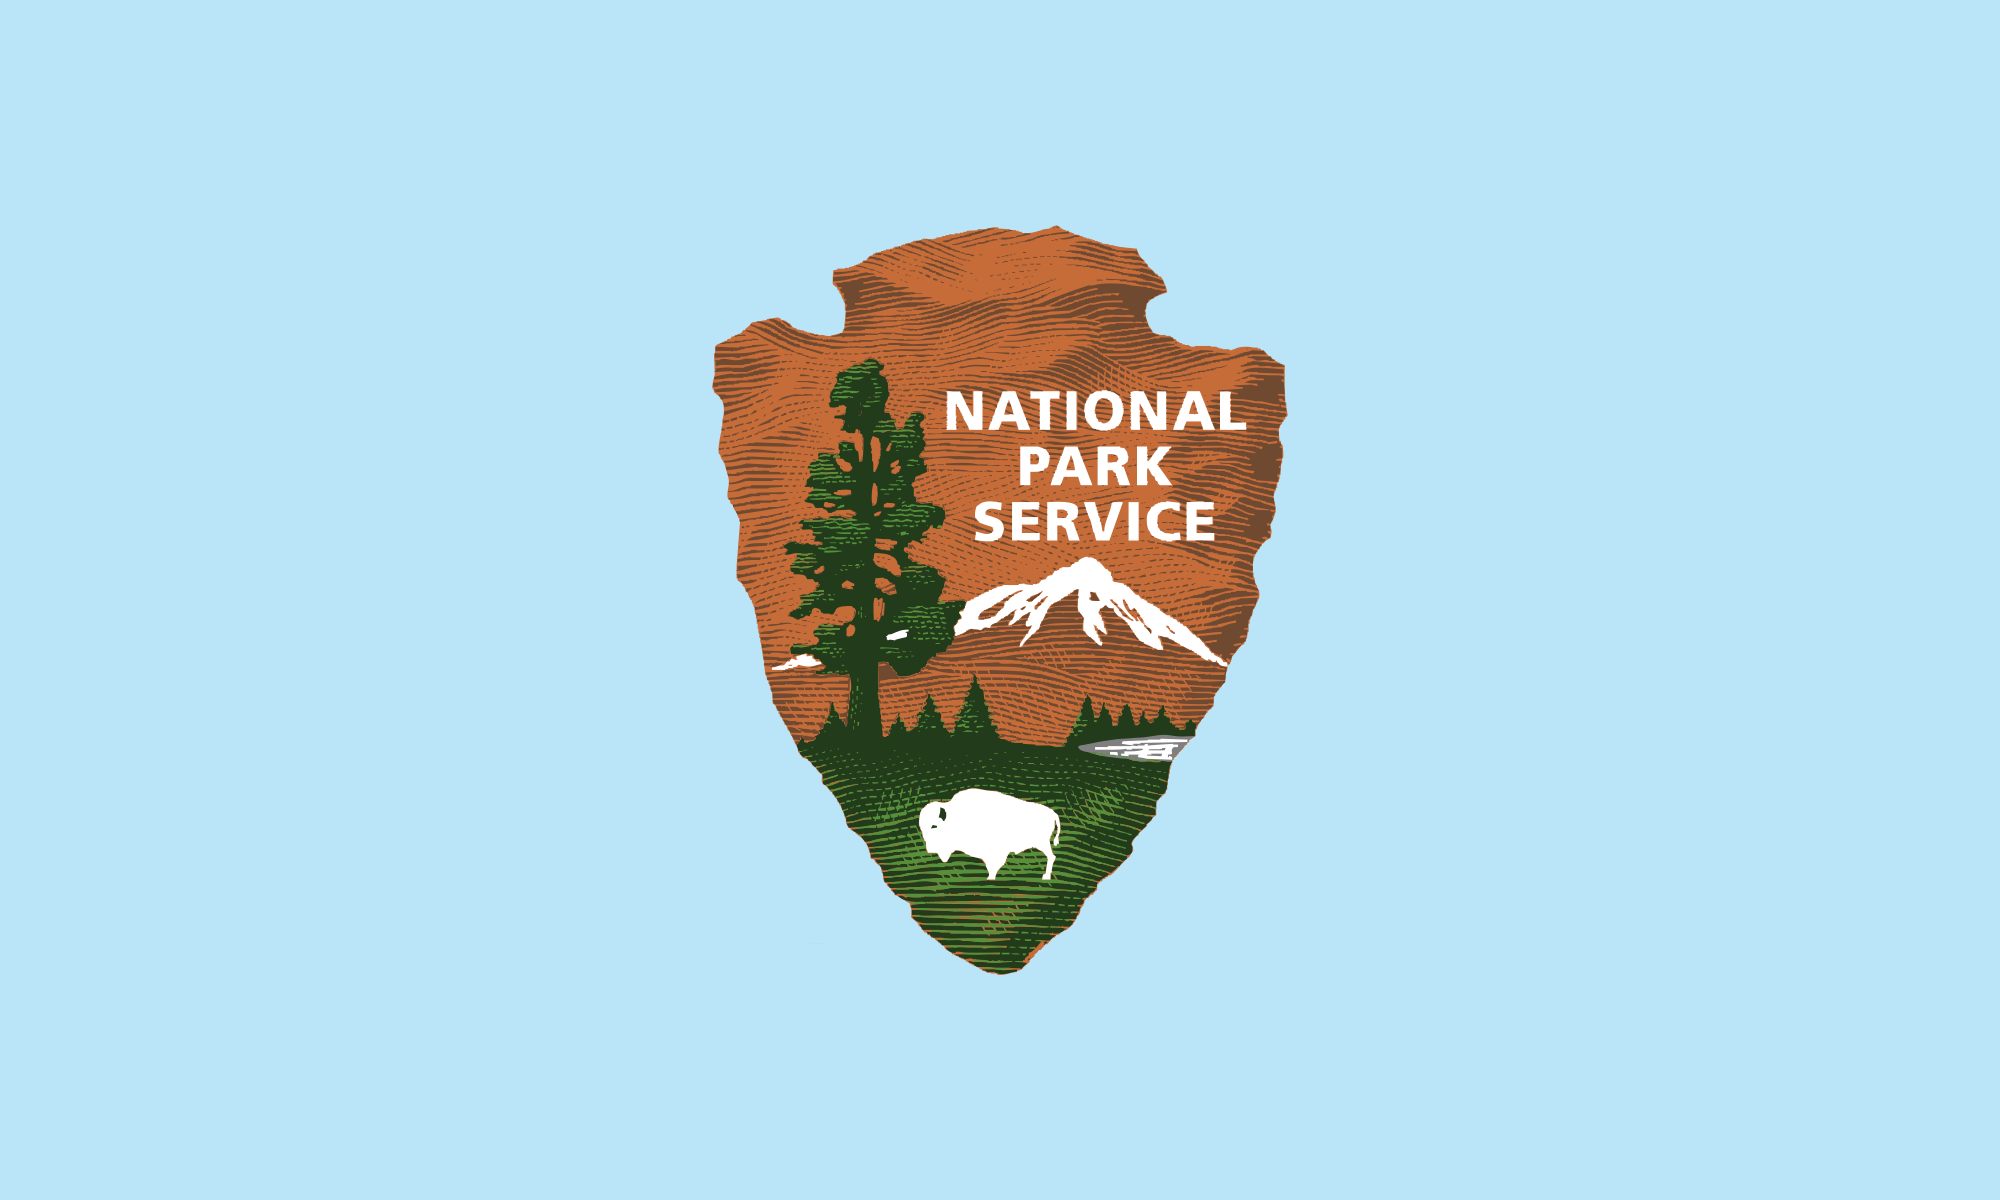 File:Flag of the United States National Park Service.png.